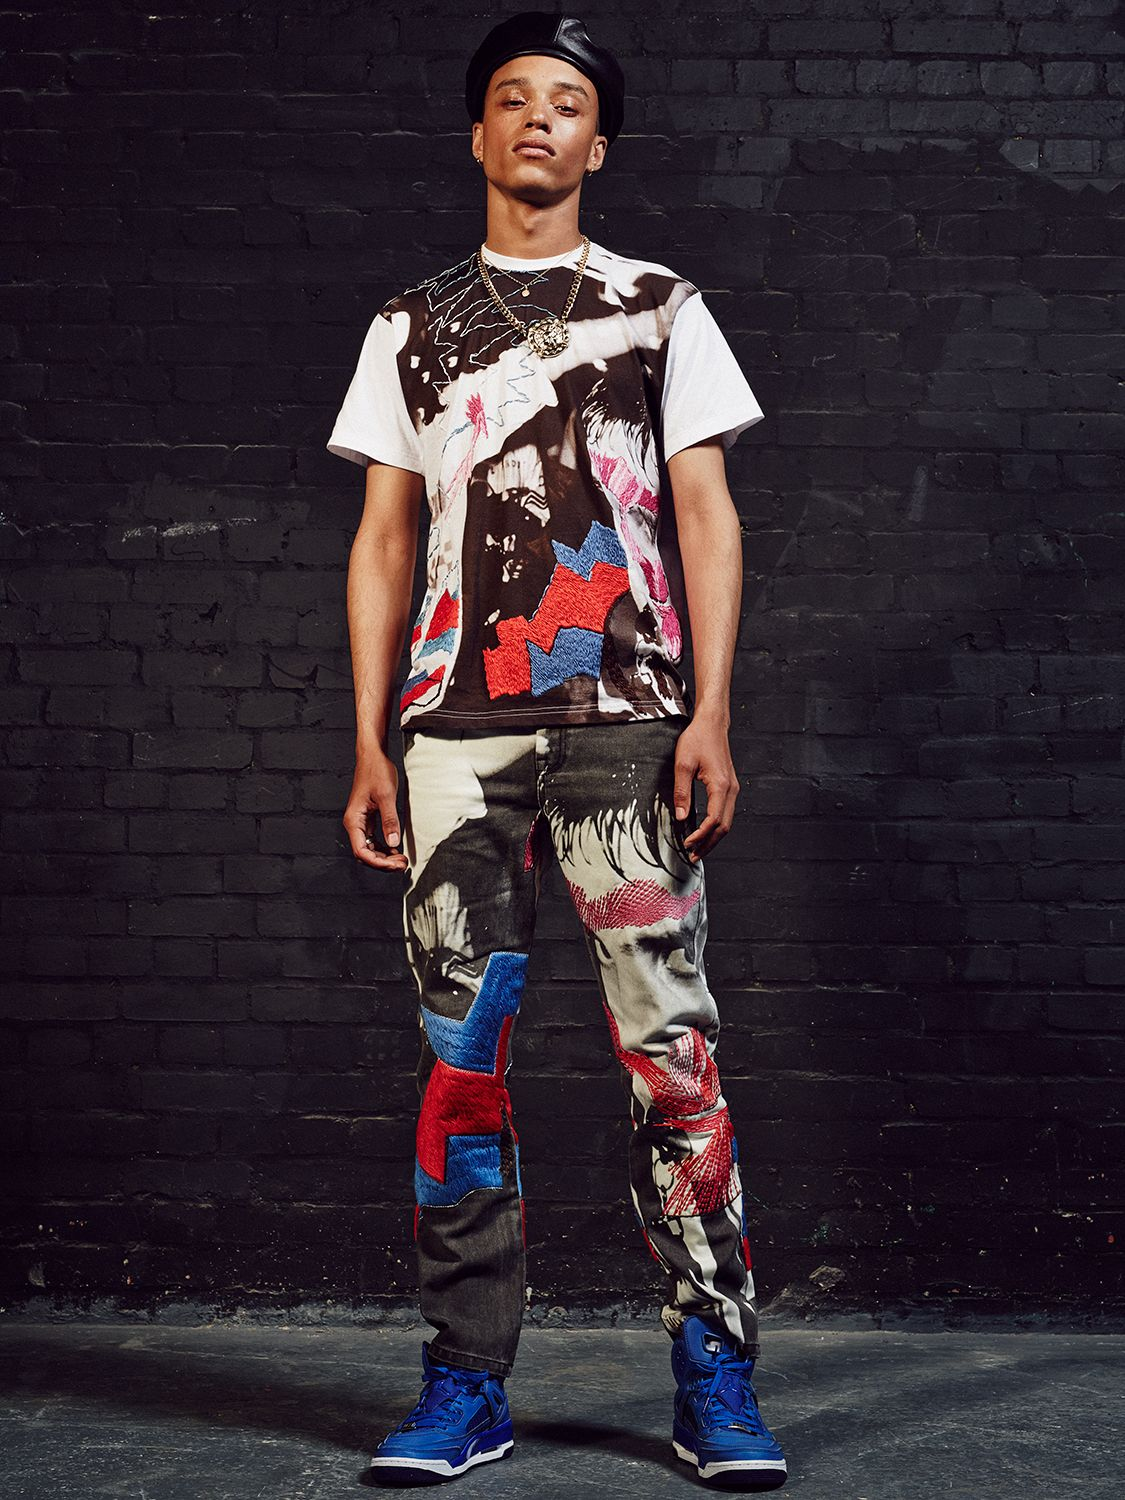 House of holland mens wear season model wearing our rave tee and